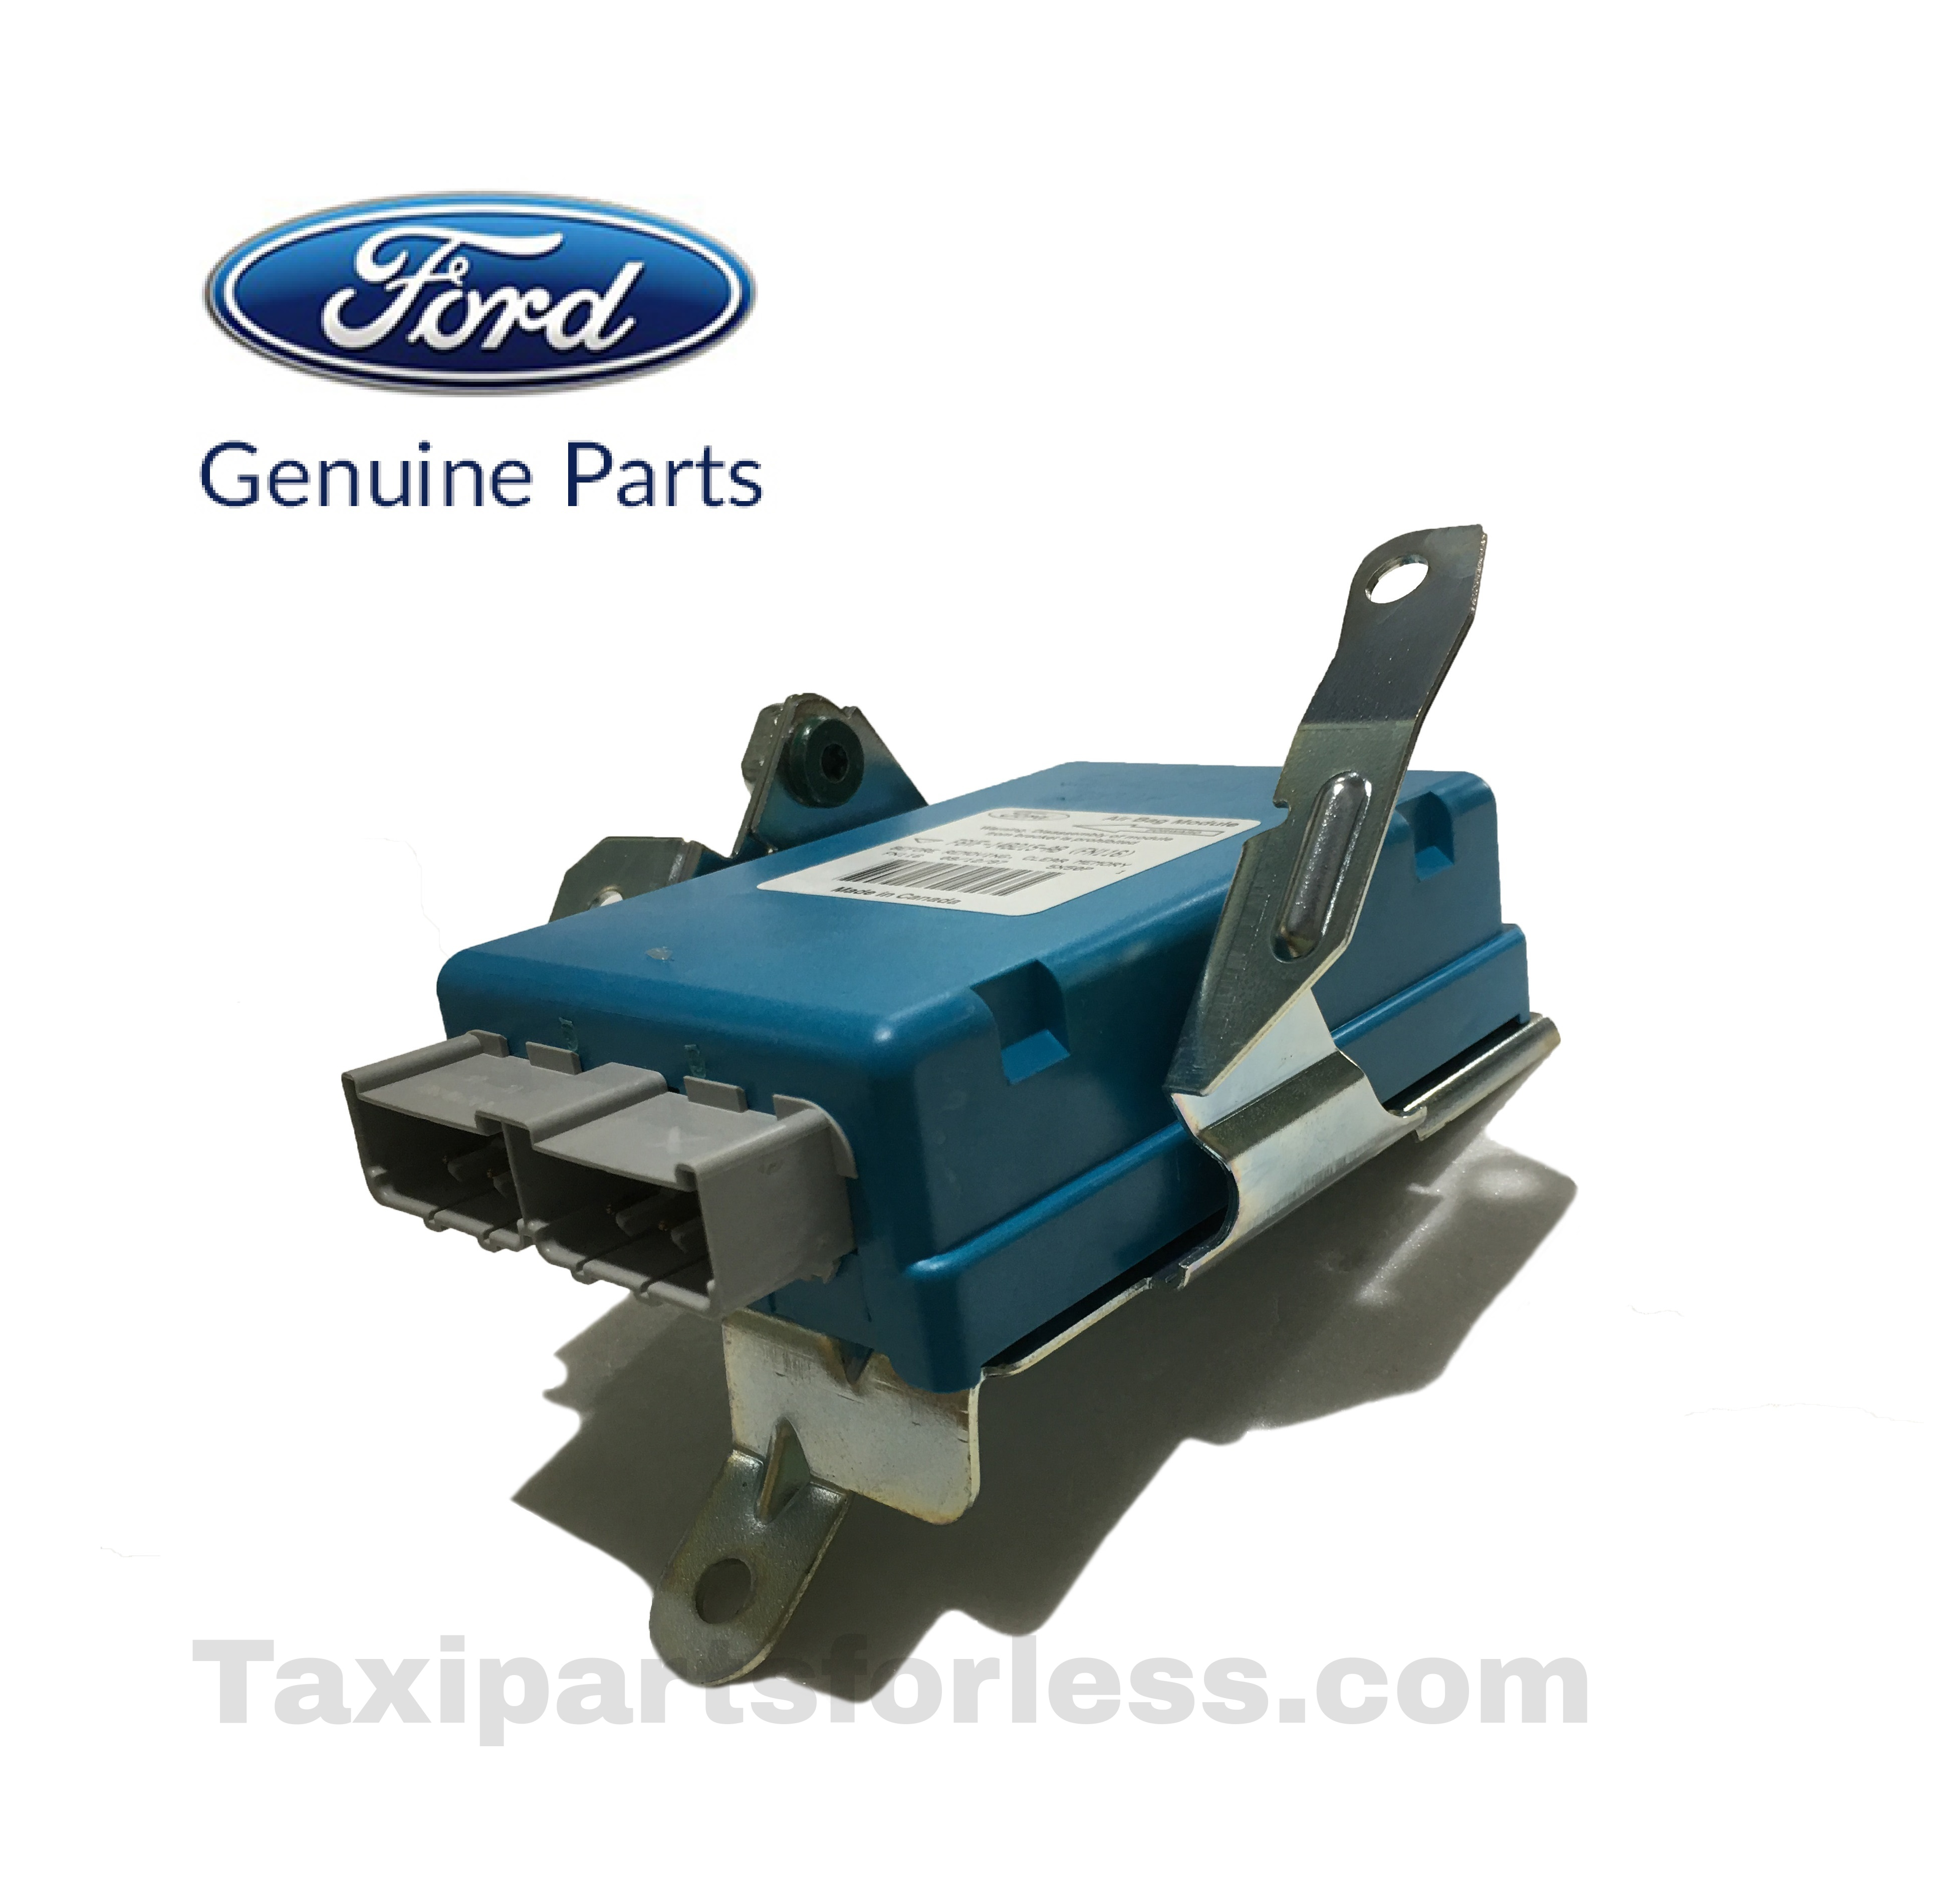 brand new ford genuine oem part fits town car free shipping